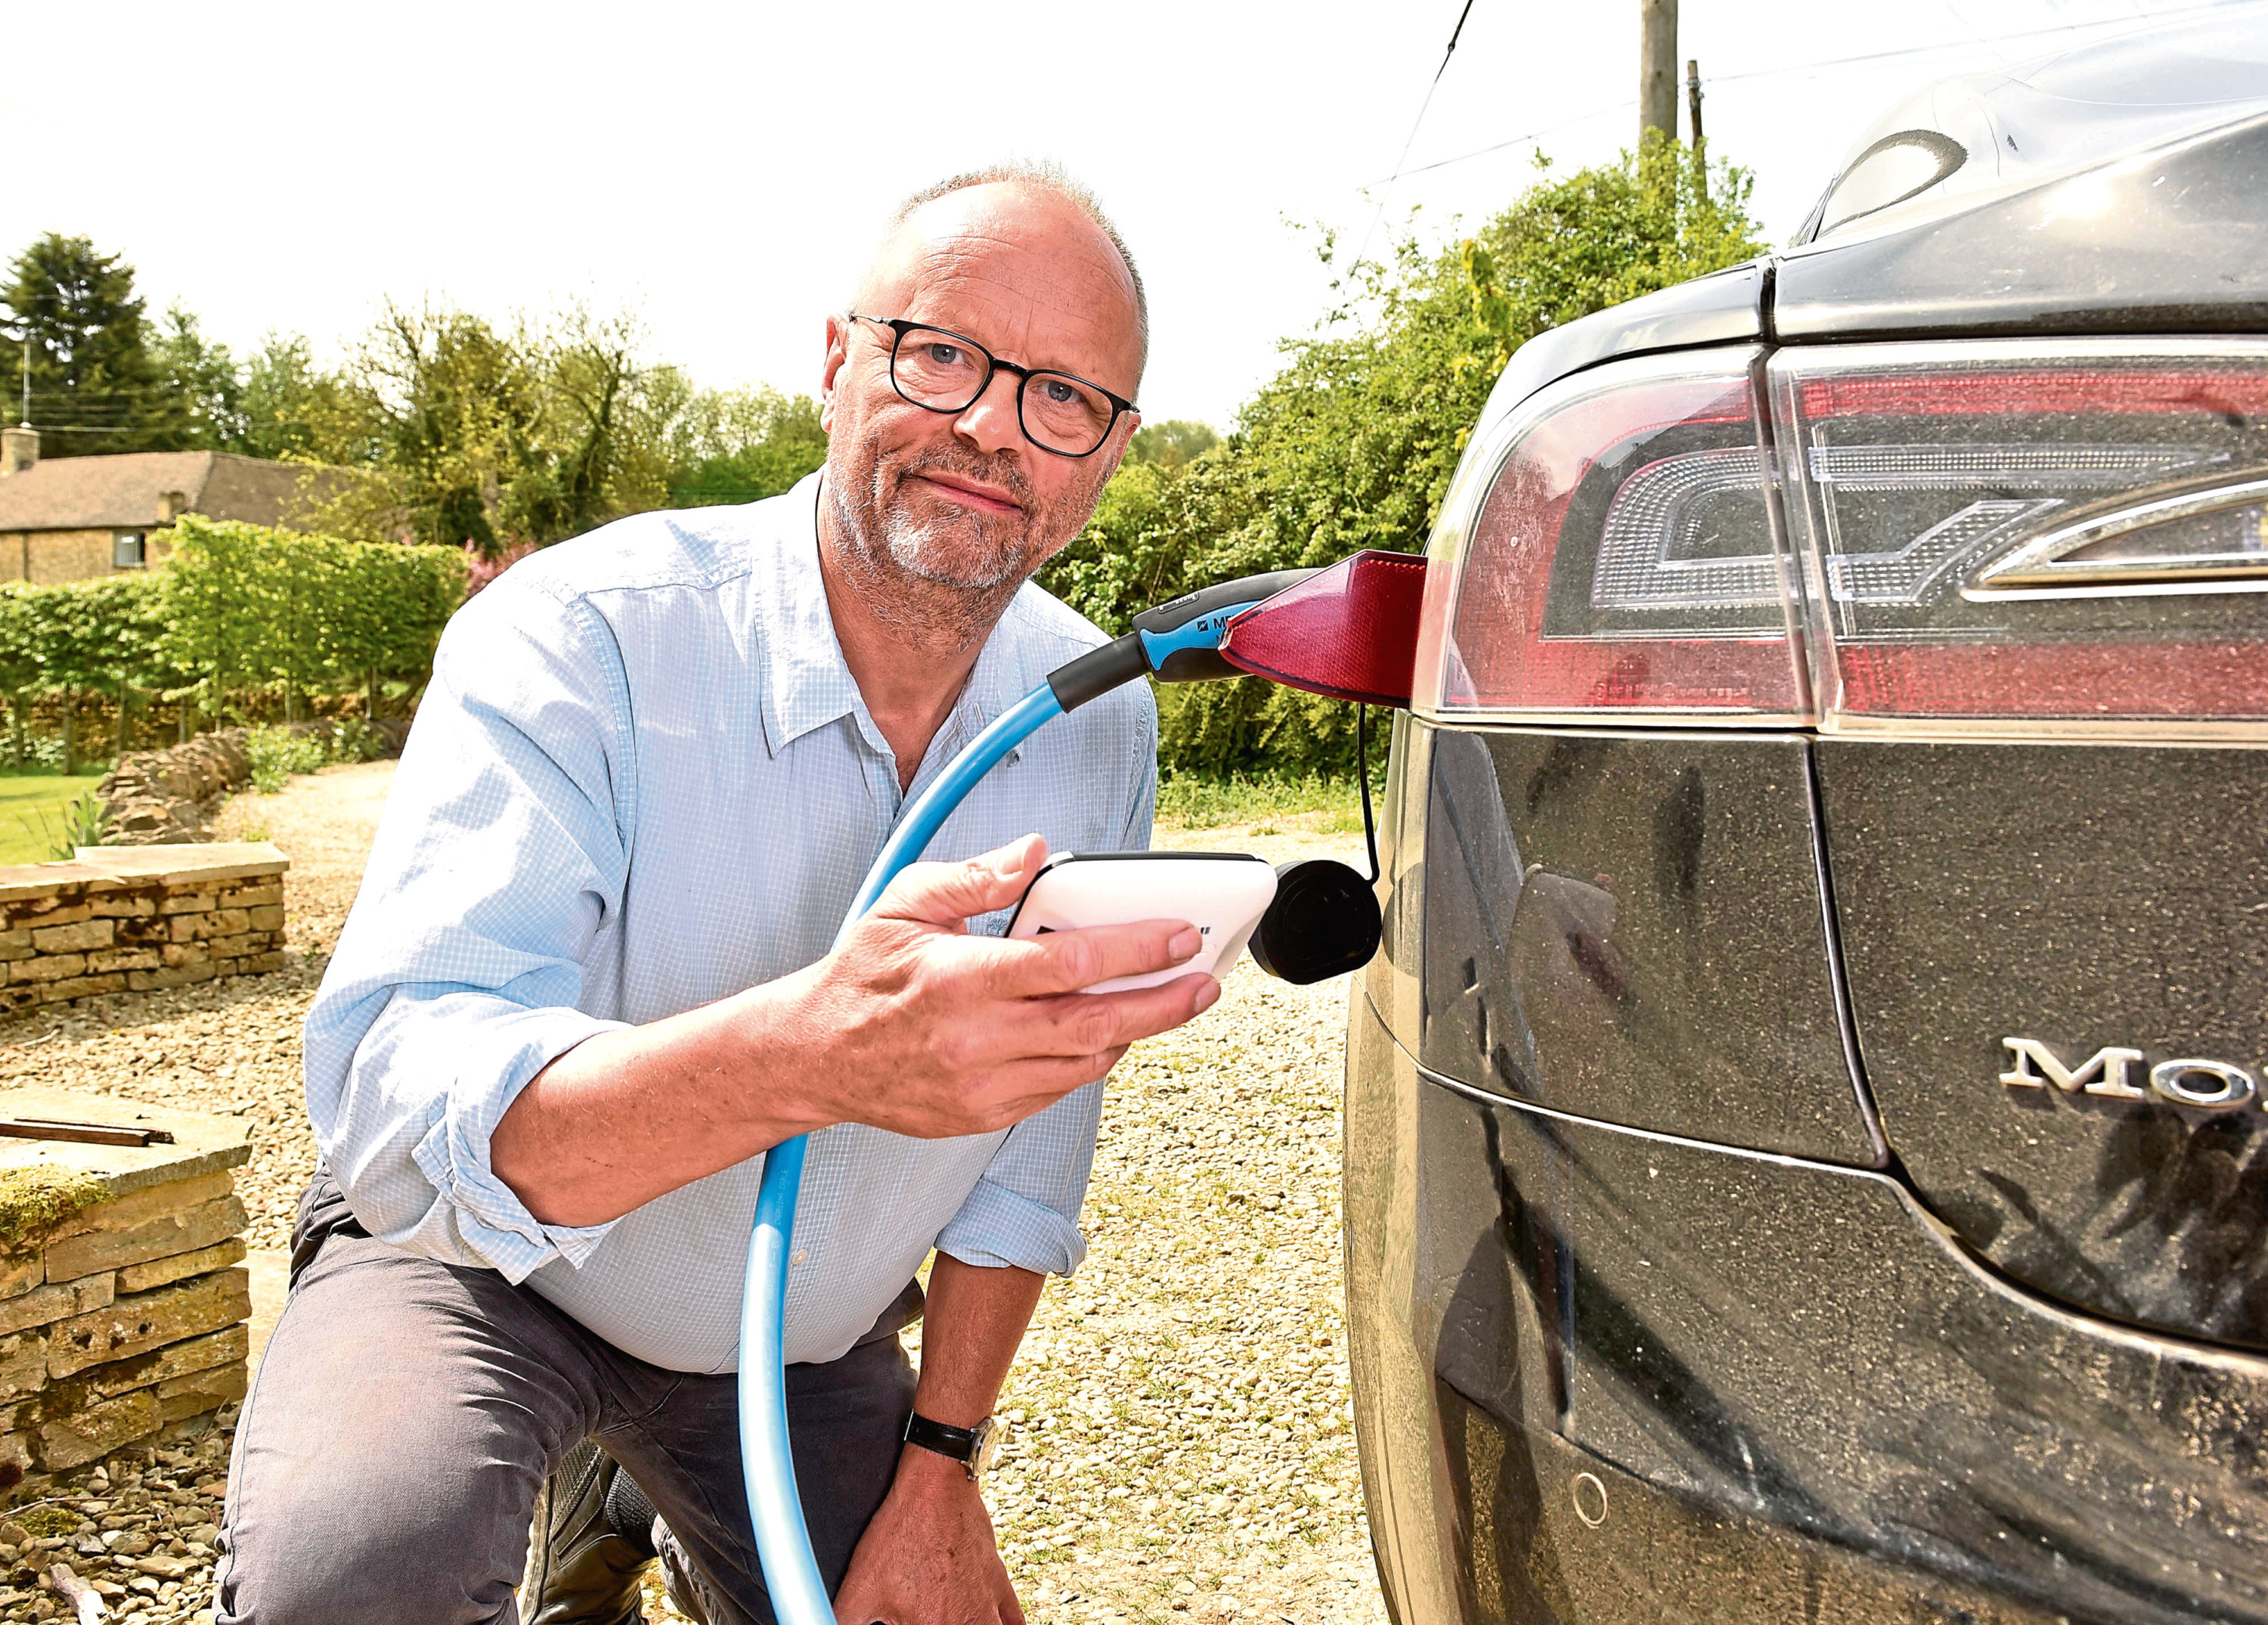 Actor Robert Llewellyn uses his smart meter on his electric car to measure his electricity usage